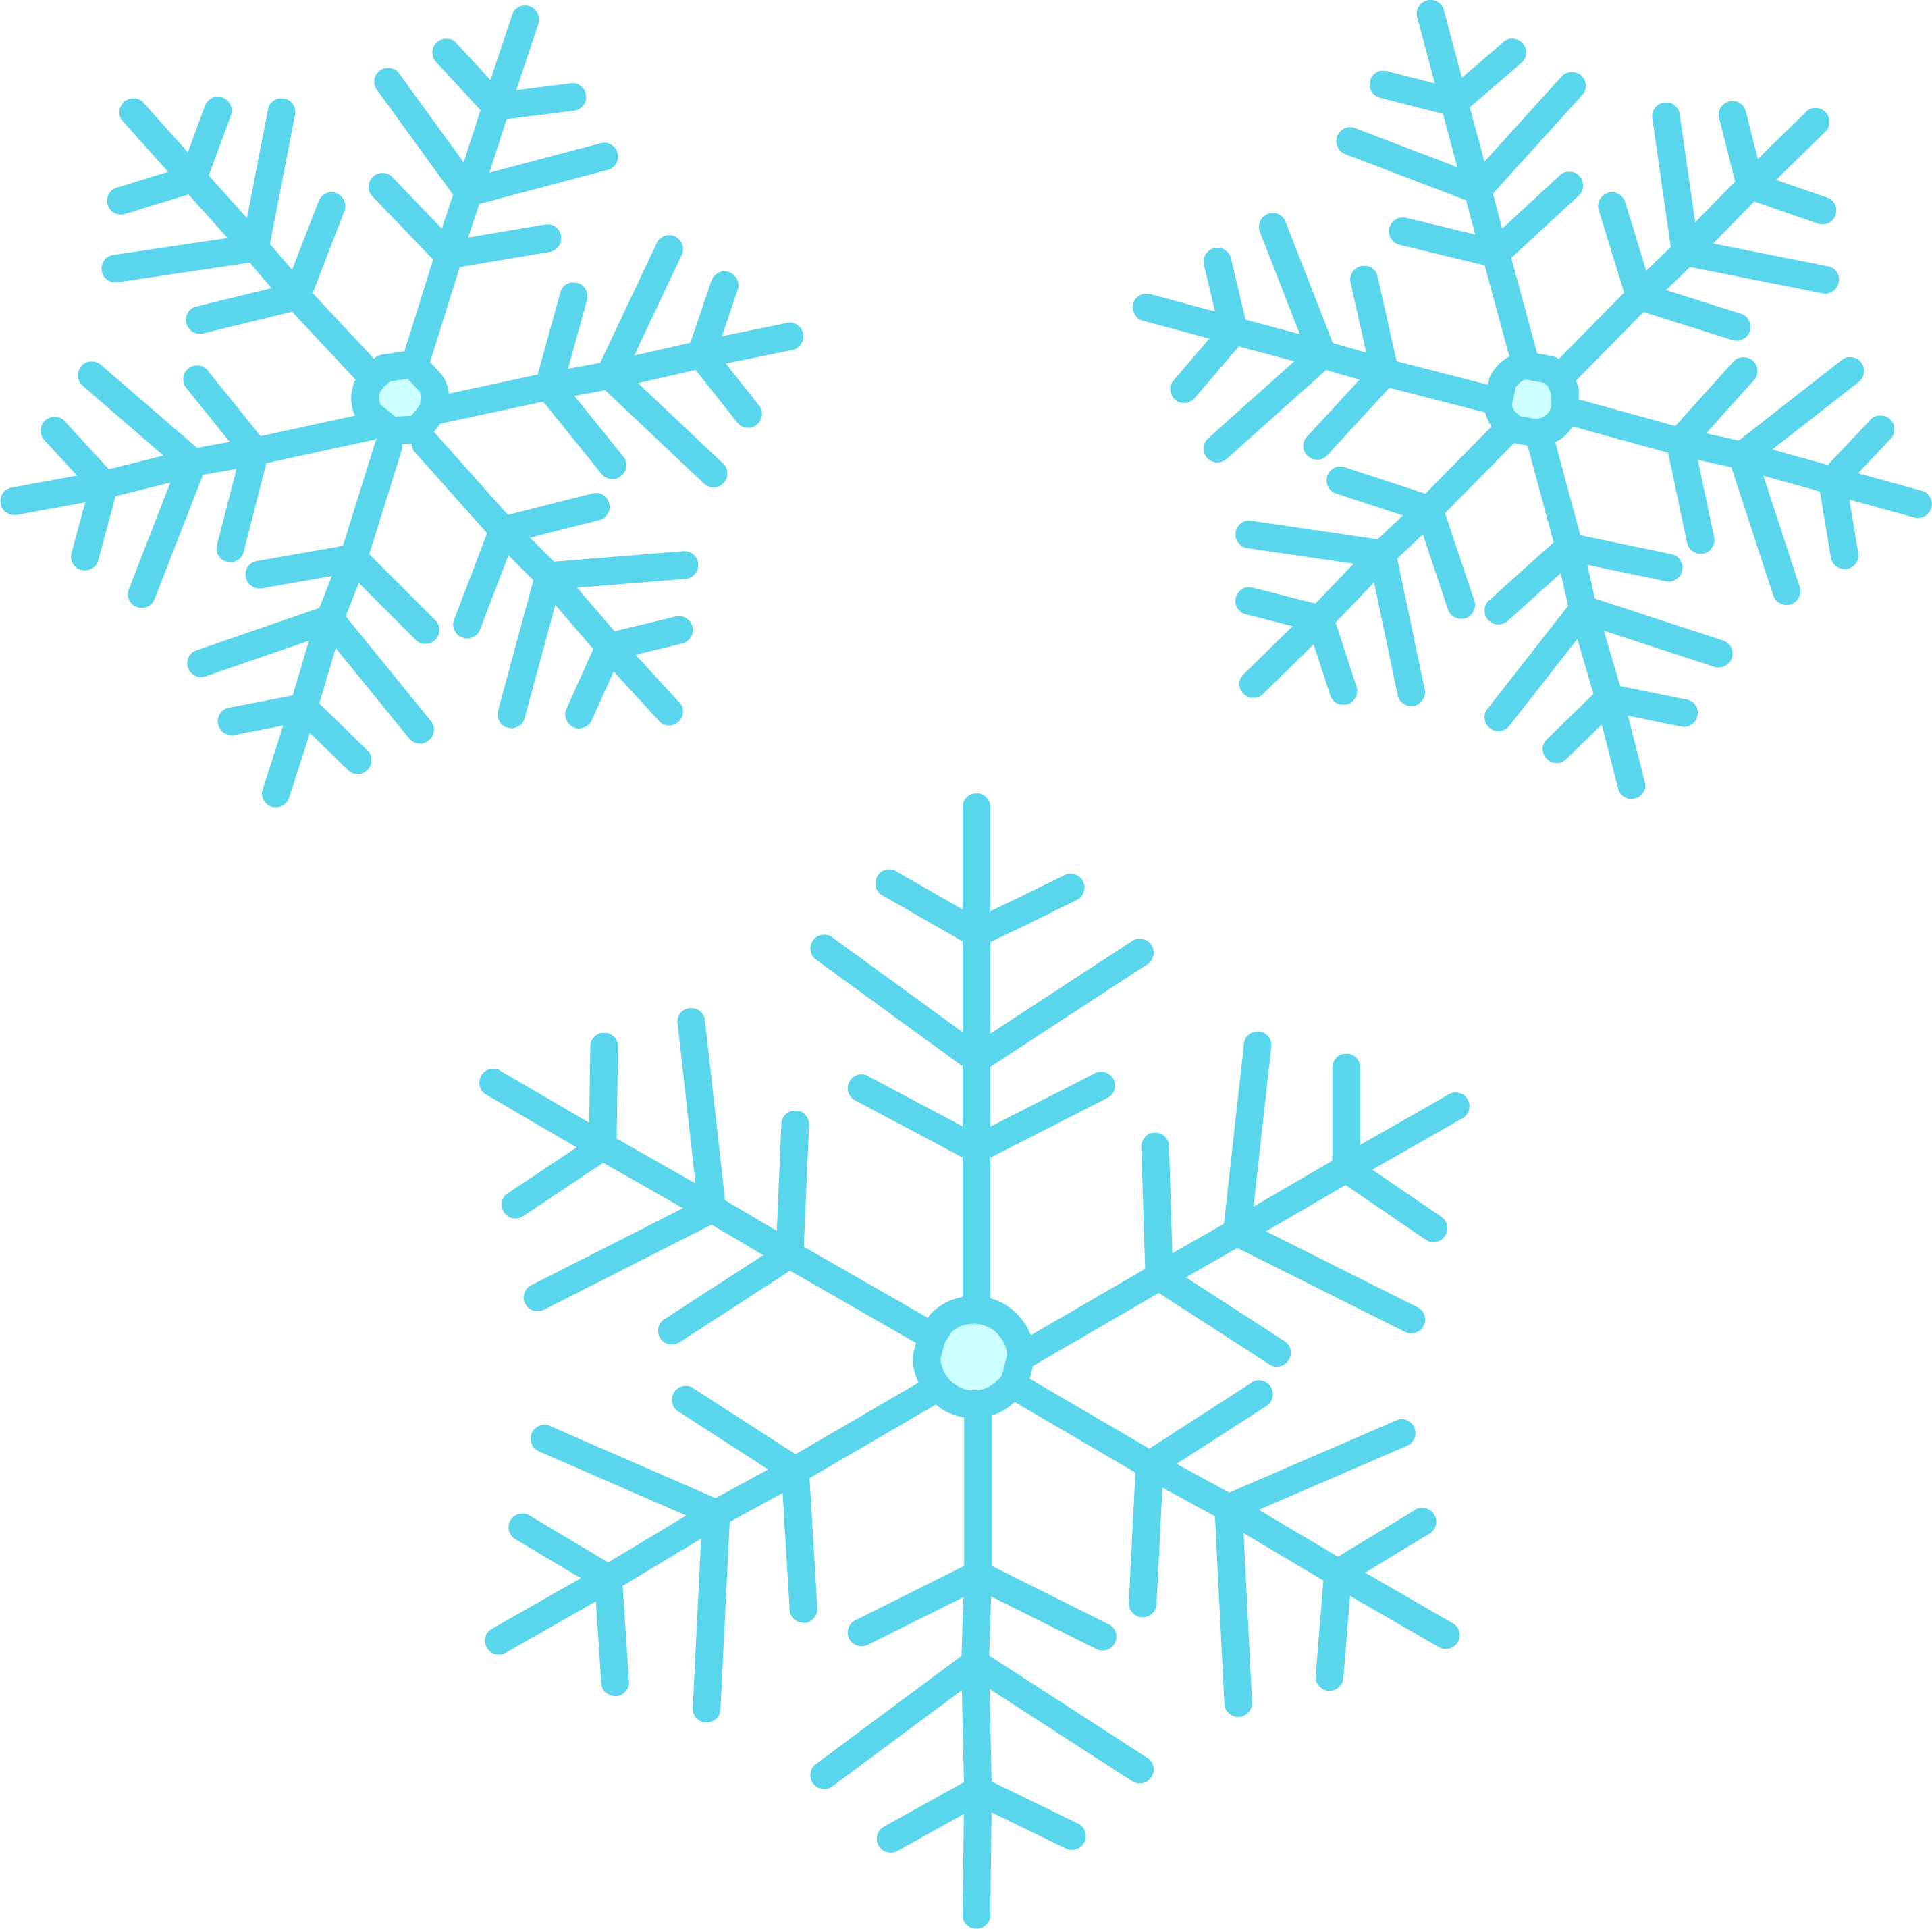 Snowflake group clipart clip art royalty free library Snowflakes Group PNG - PHOTOS PNG clip art royalty free library